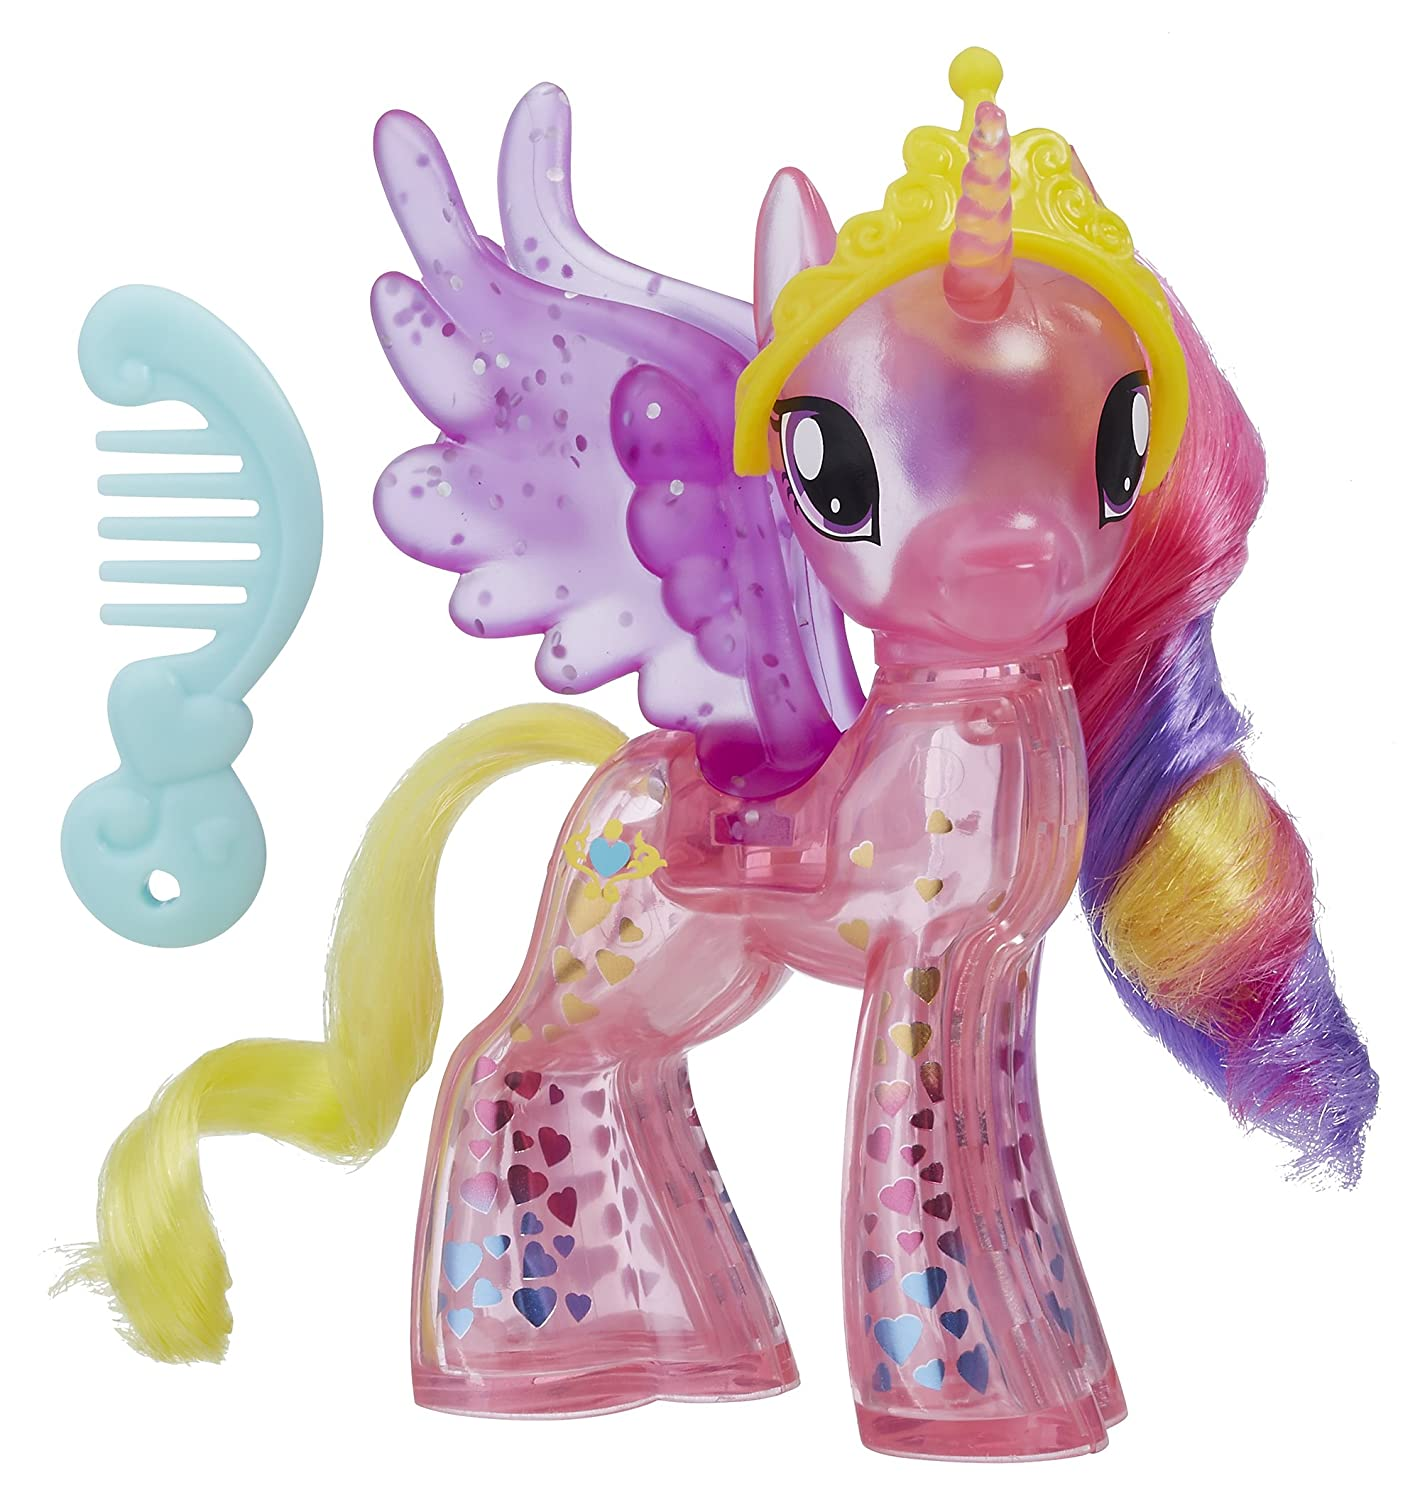 Top 11 Best My Little Pony Toys Reviews in 2020 11